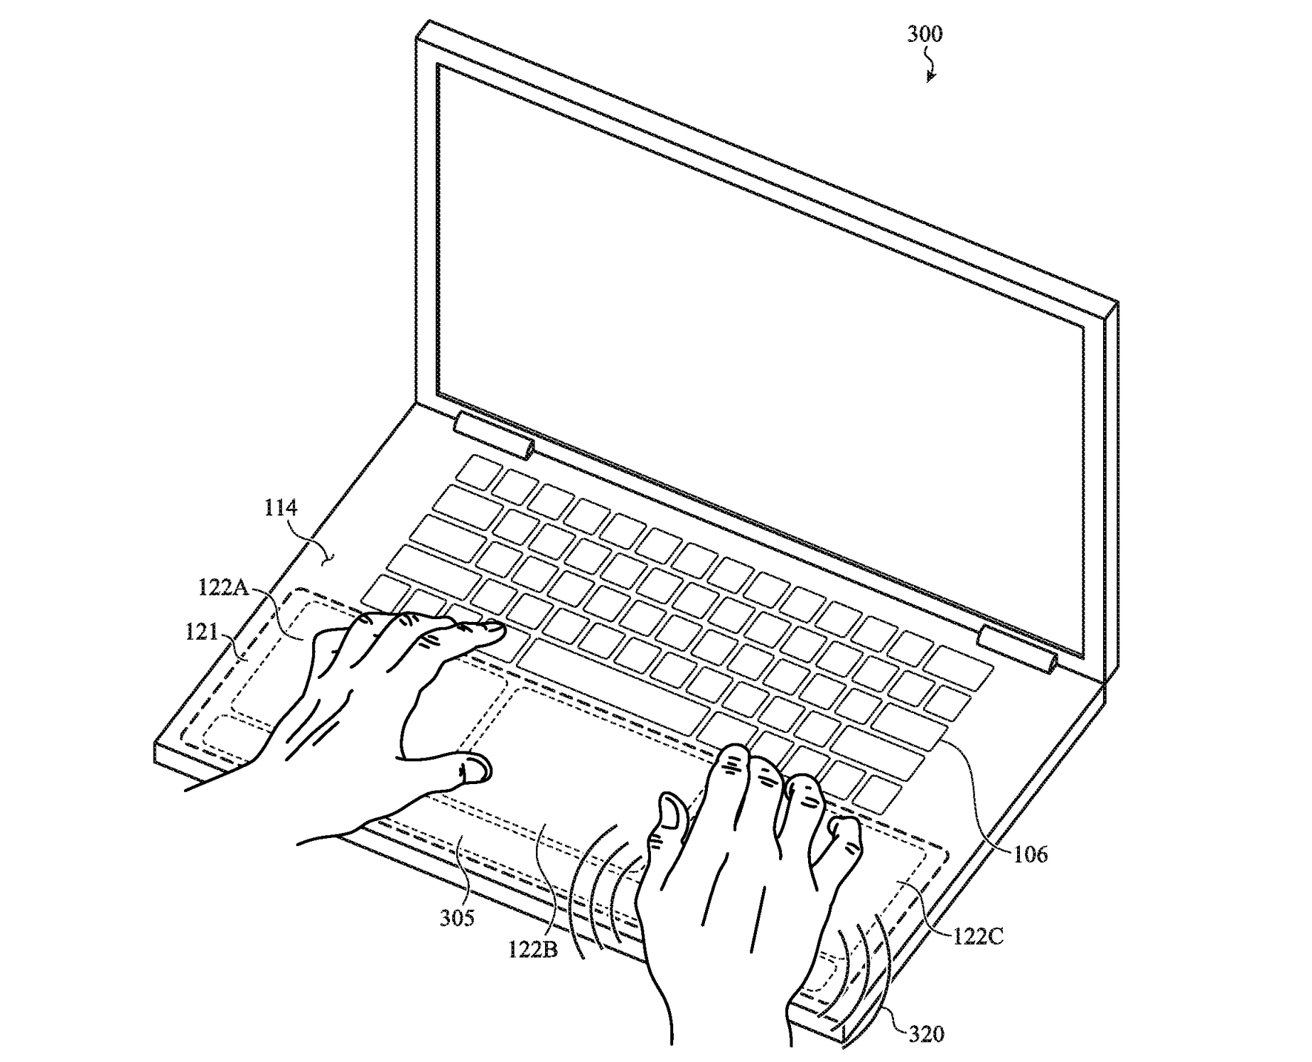 A MacBook's lower portion could keep haptic vibrations to specific areas.